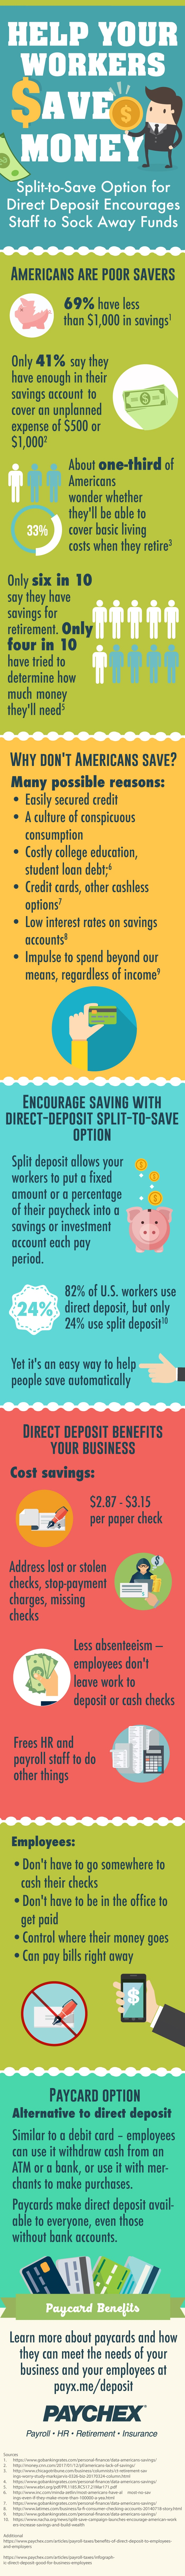 Direct deposit split-to-save option helps employees save more money.